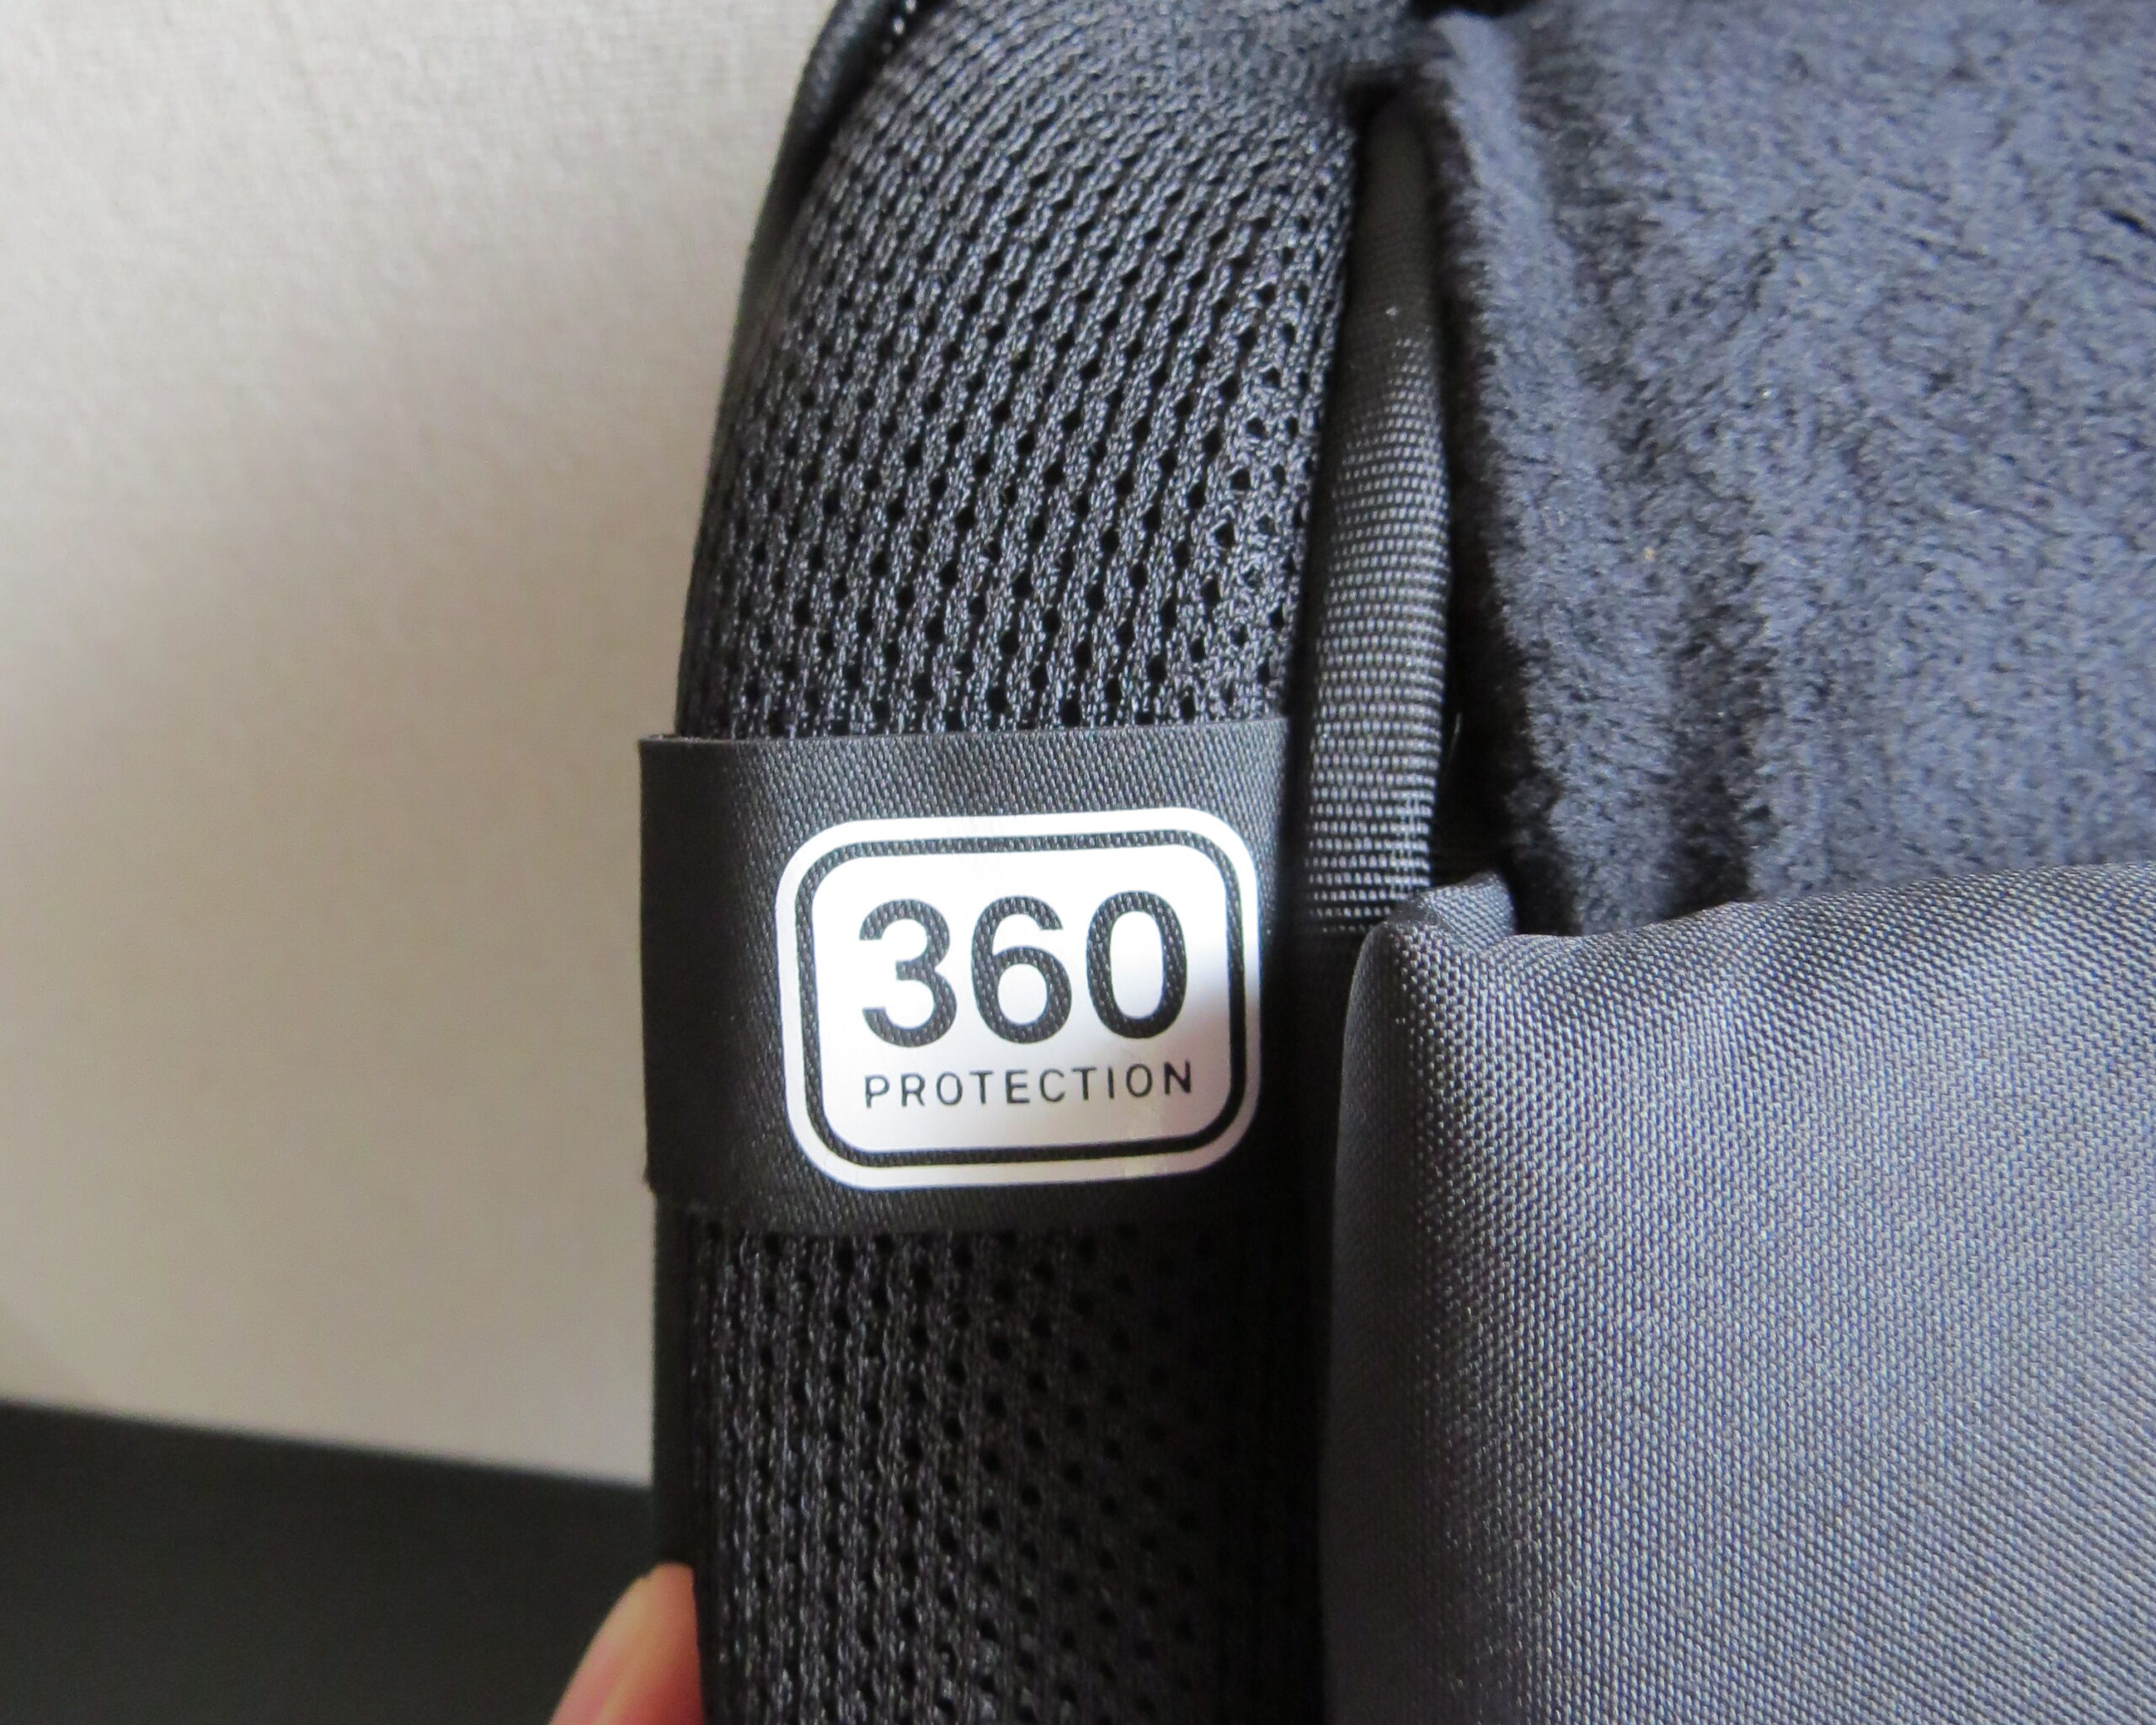 city collection compact backpackの360°プロテクション